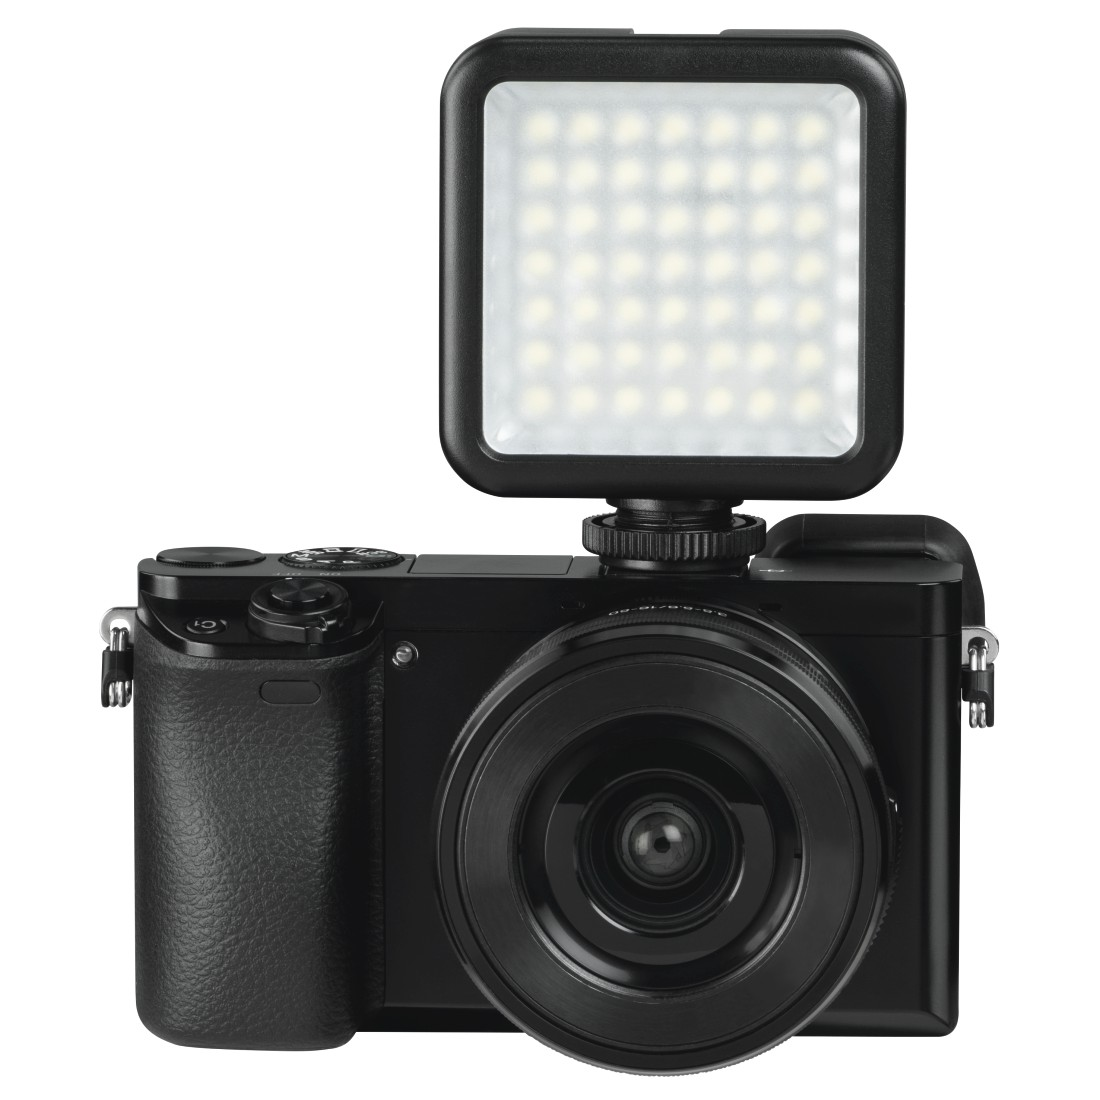 "awx4 High-Res Appliance 4 - Hama, ""49 BD"" LED Lights for Smartphone, Photo and Video Cameras"